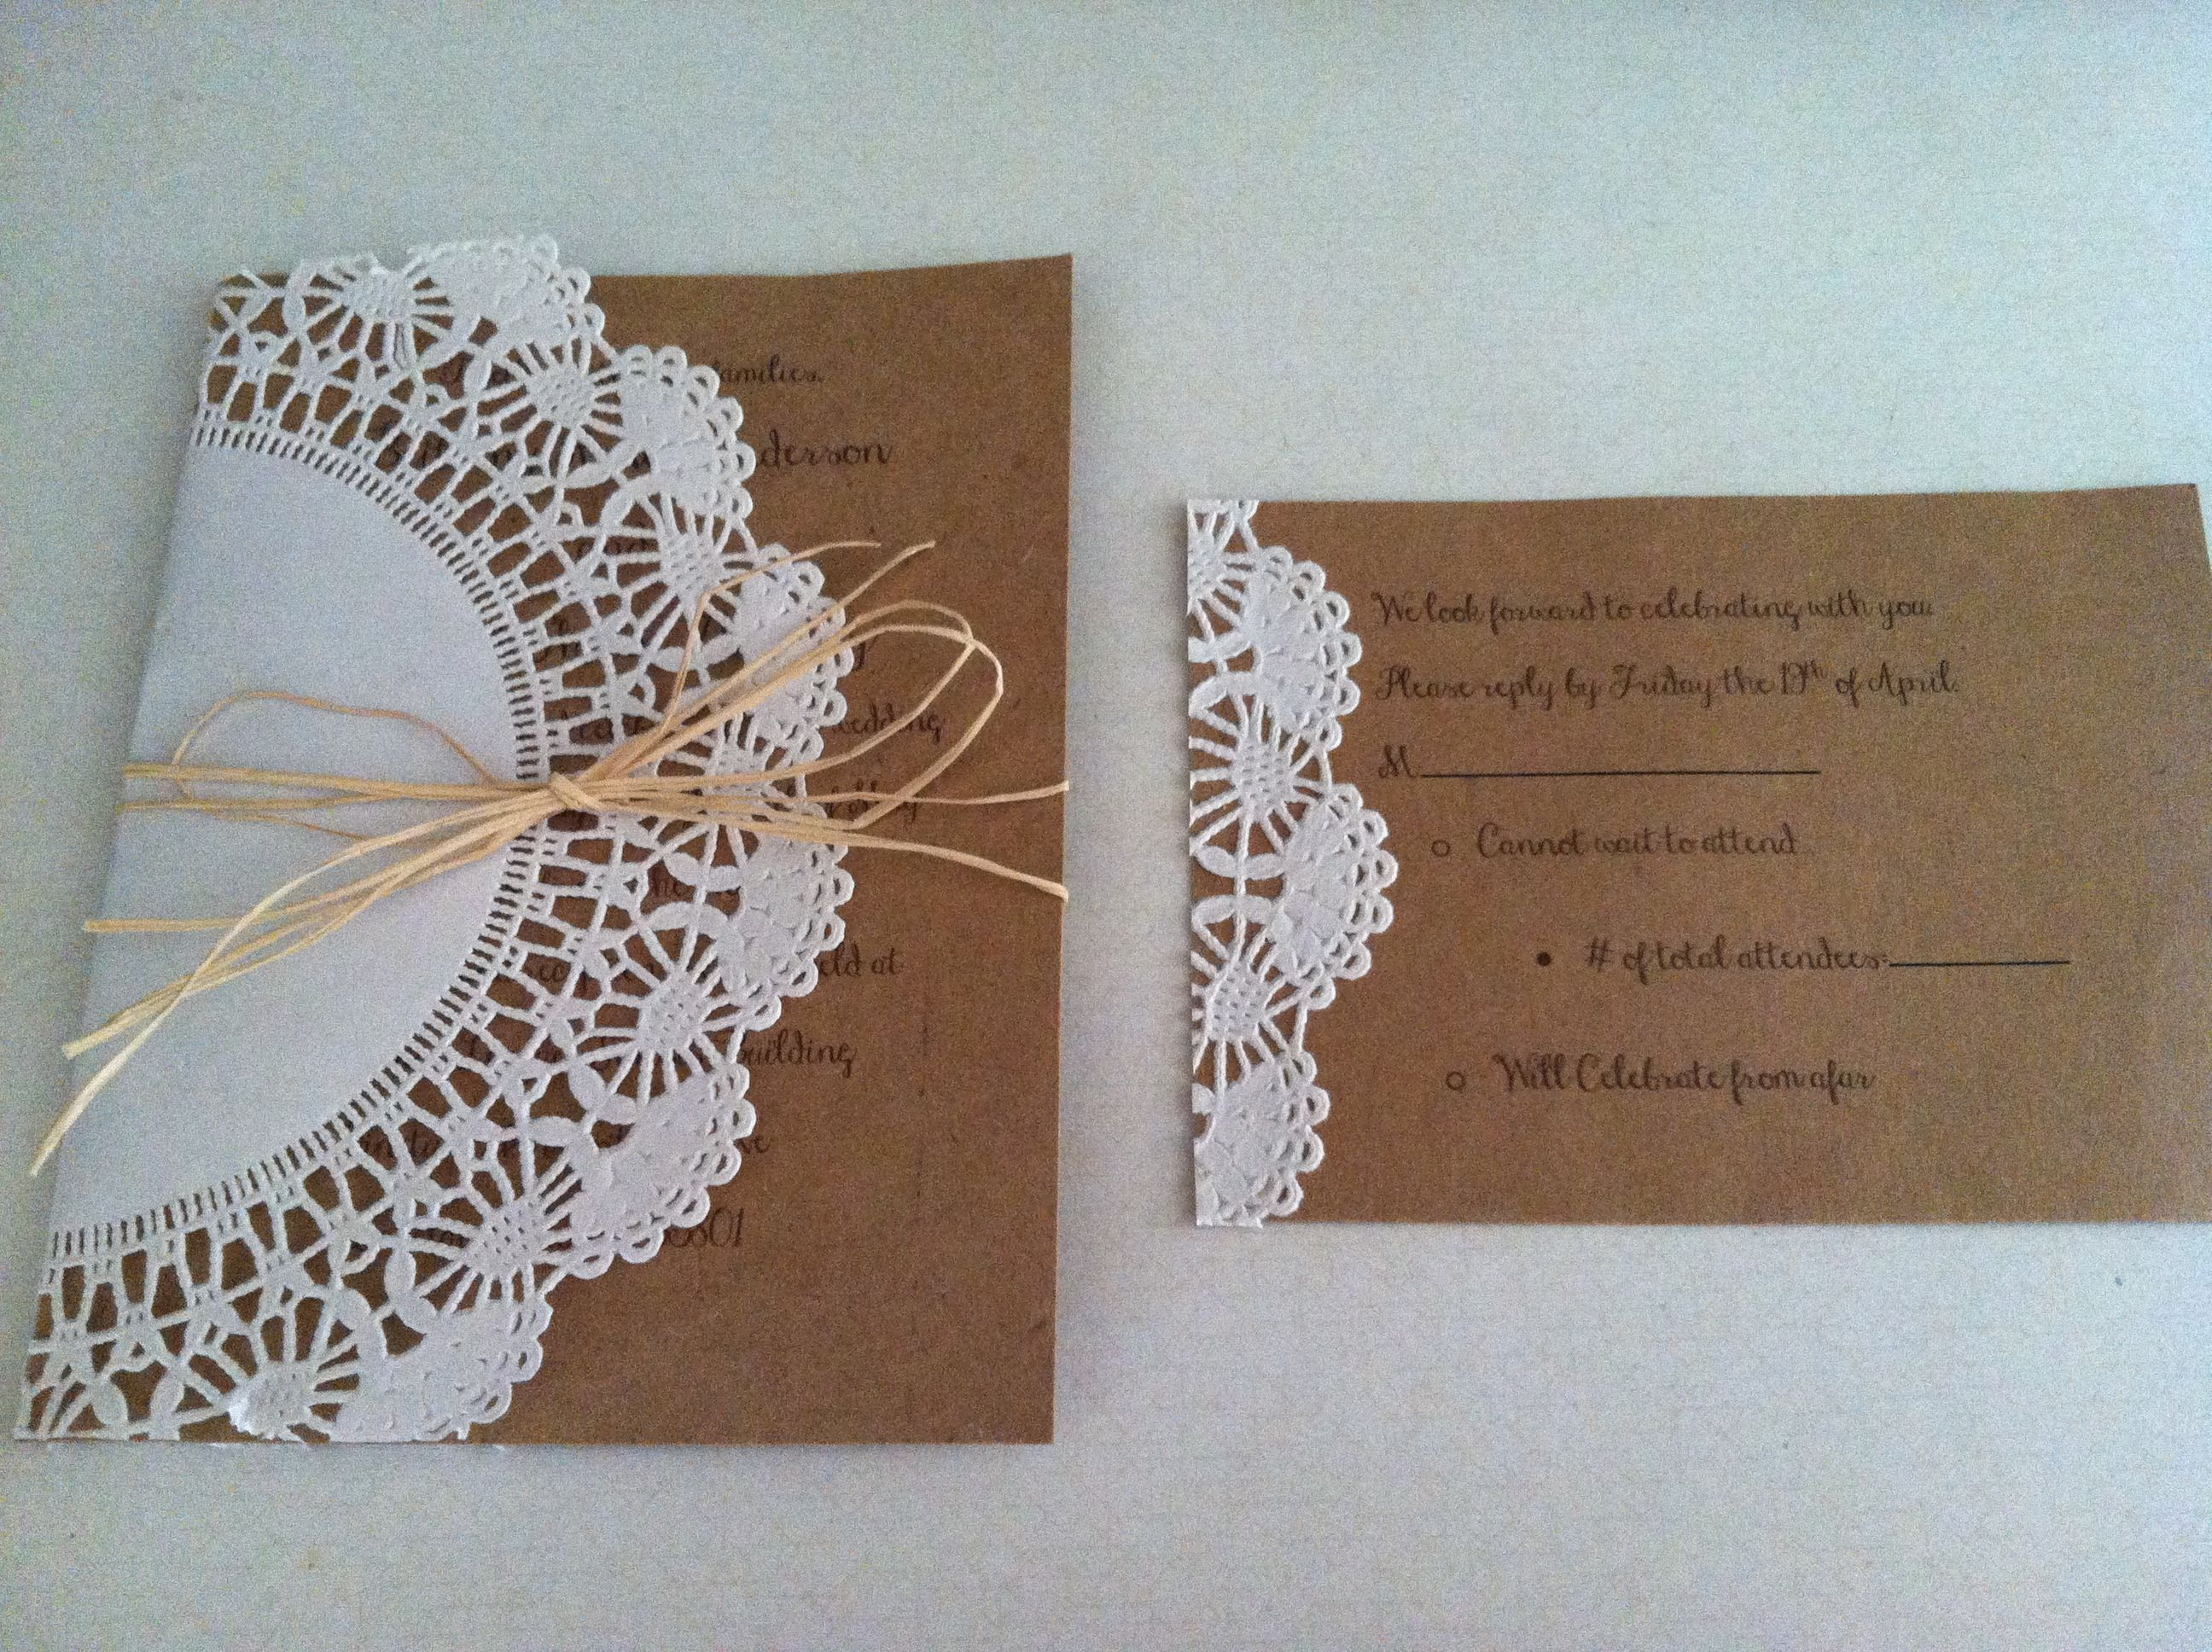 DIY wedding invites: 5x7 card stock for invite, 4x6 card stock for ...